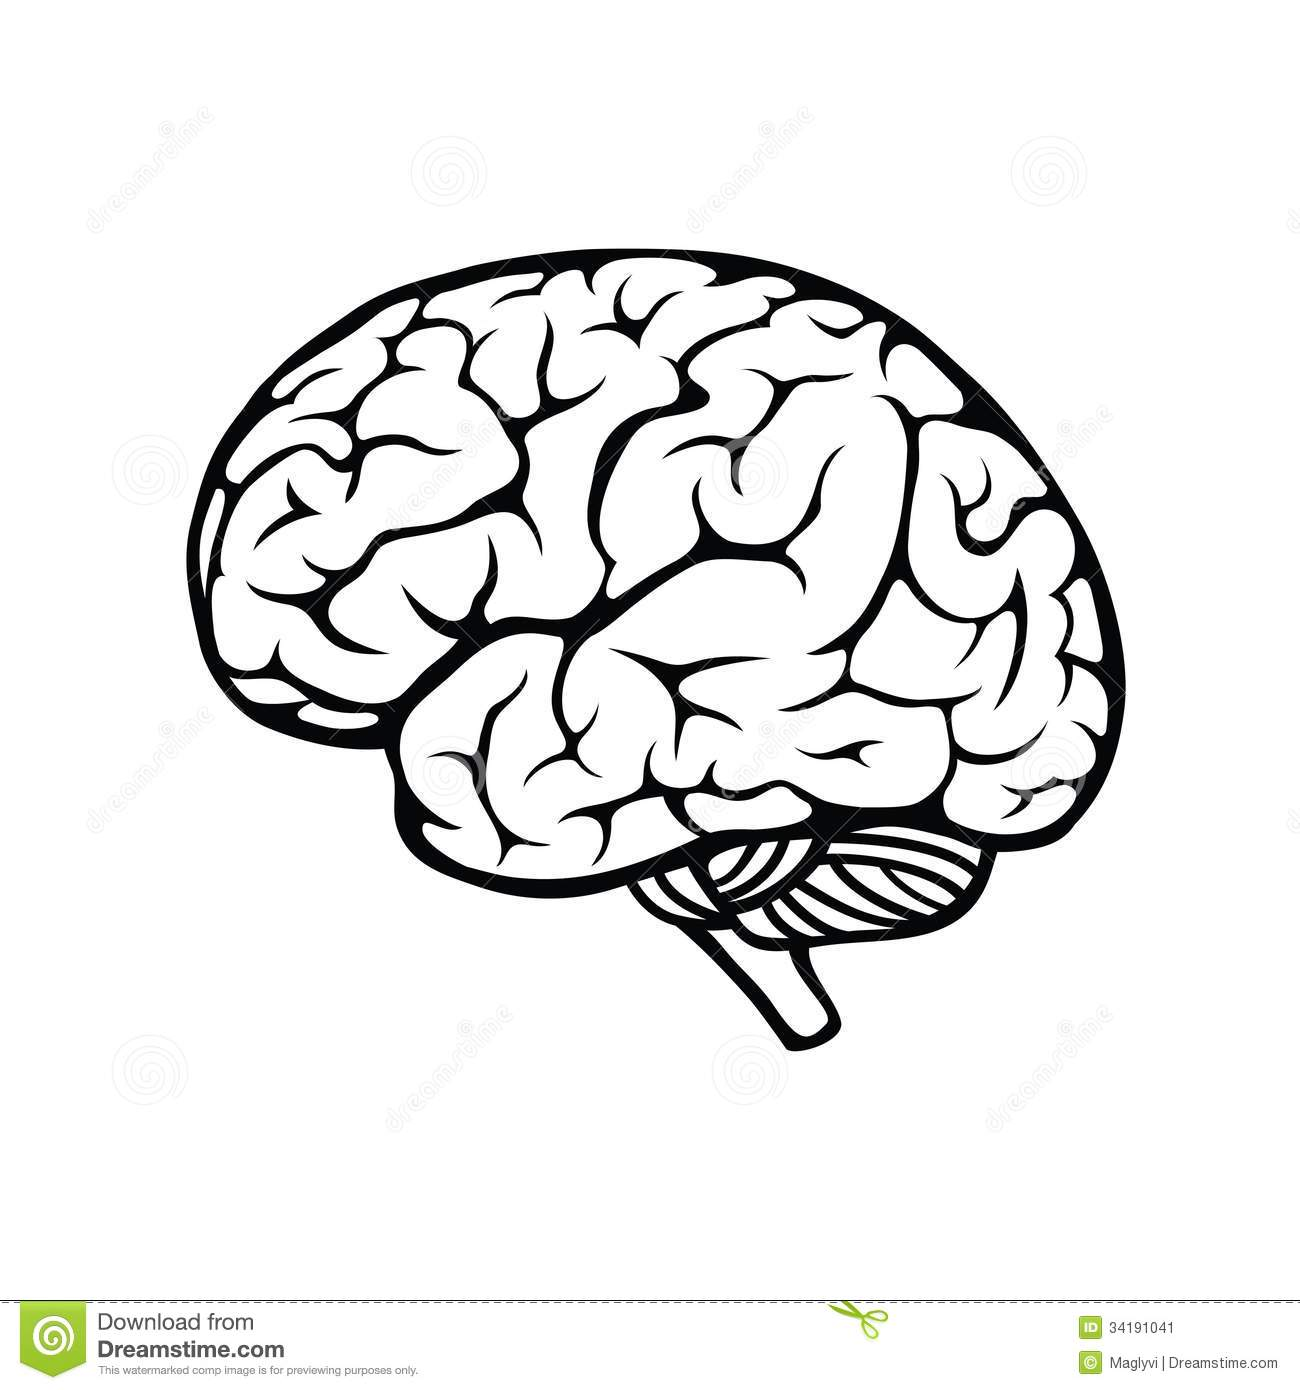 Brain Outline Coloring Page